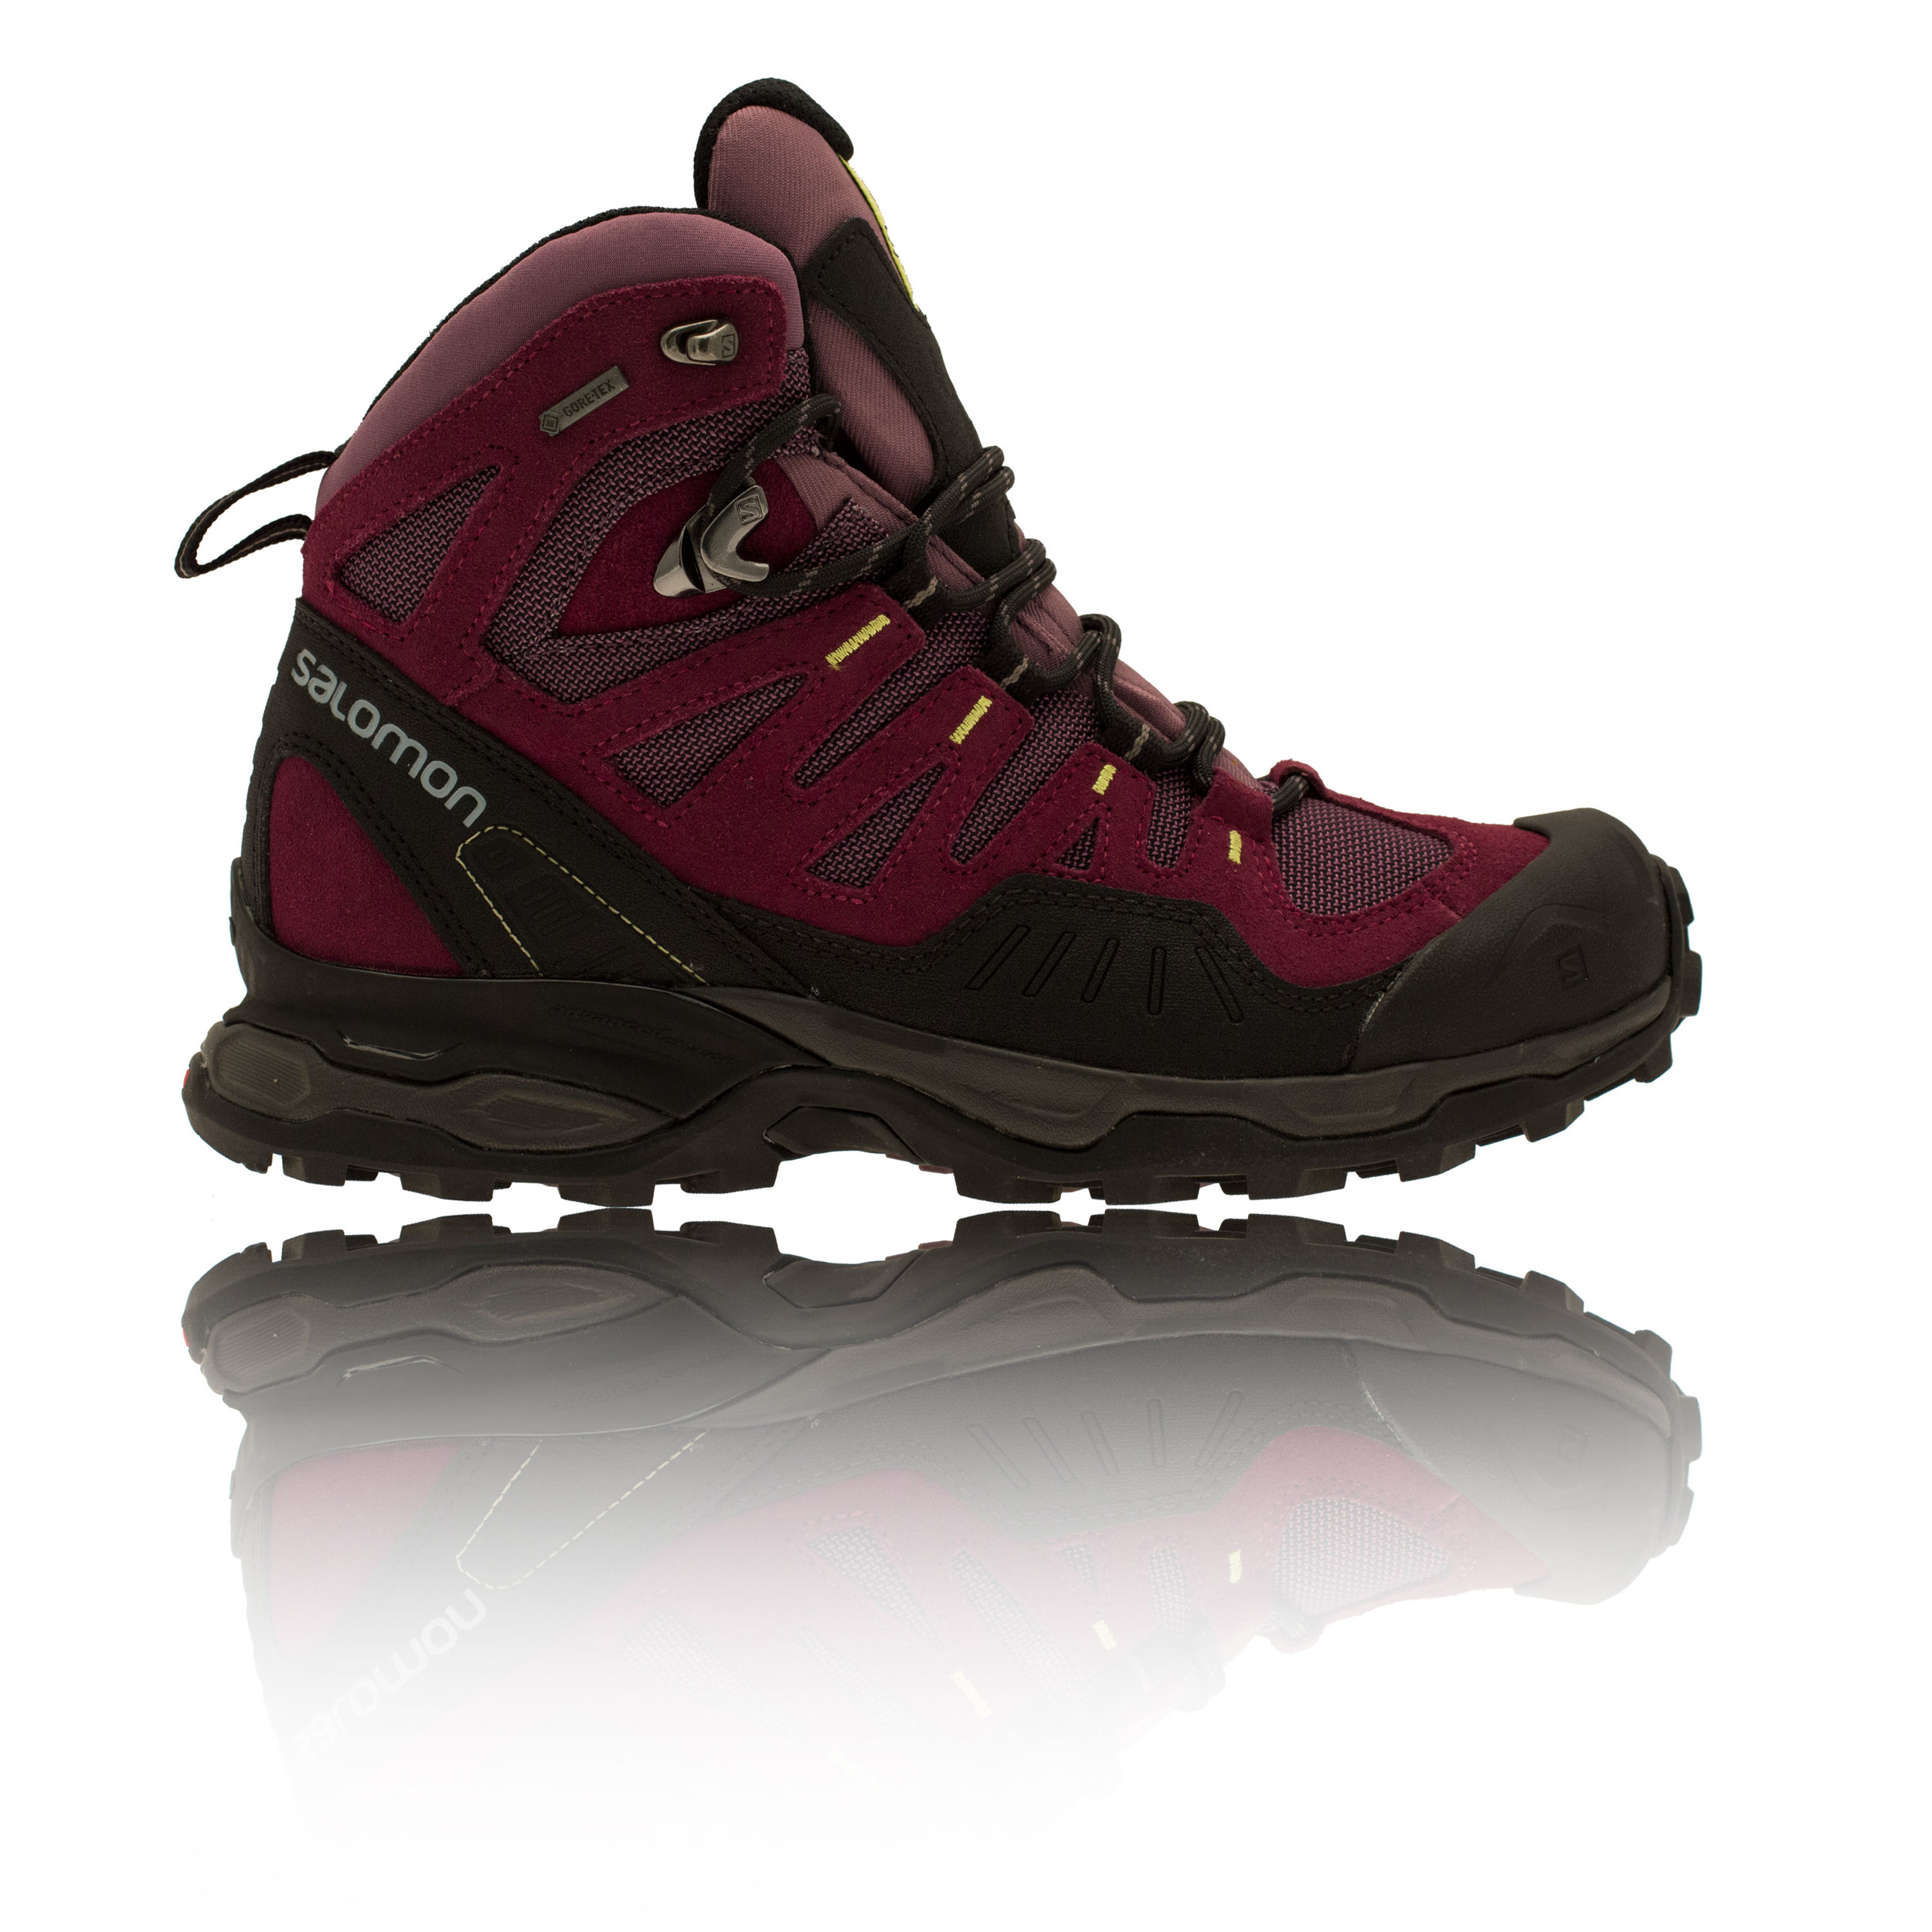 Model Salomon Ellipse Mid GTX Hiking Boot  Women39s  Backcountrycom